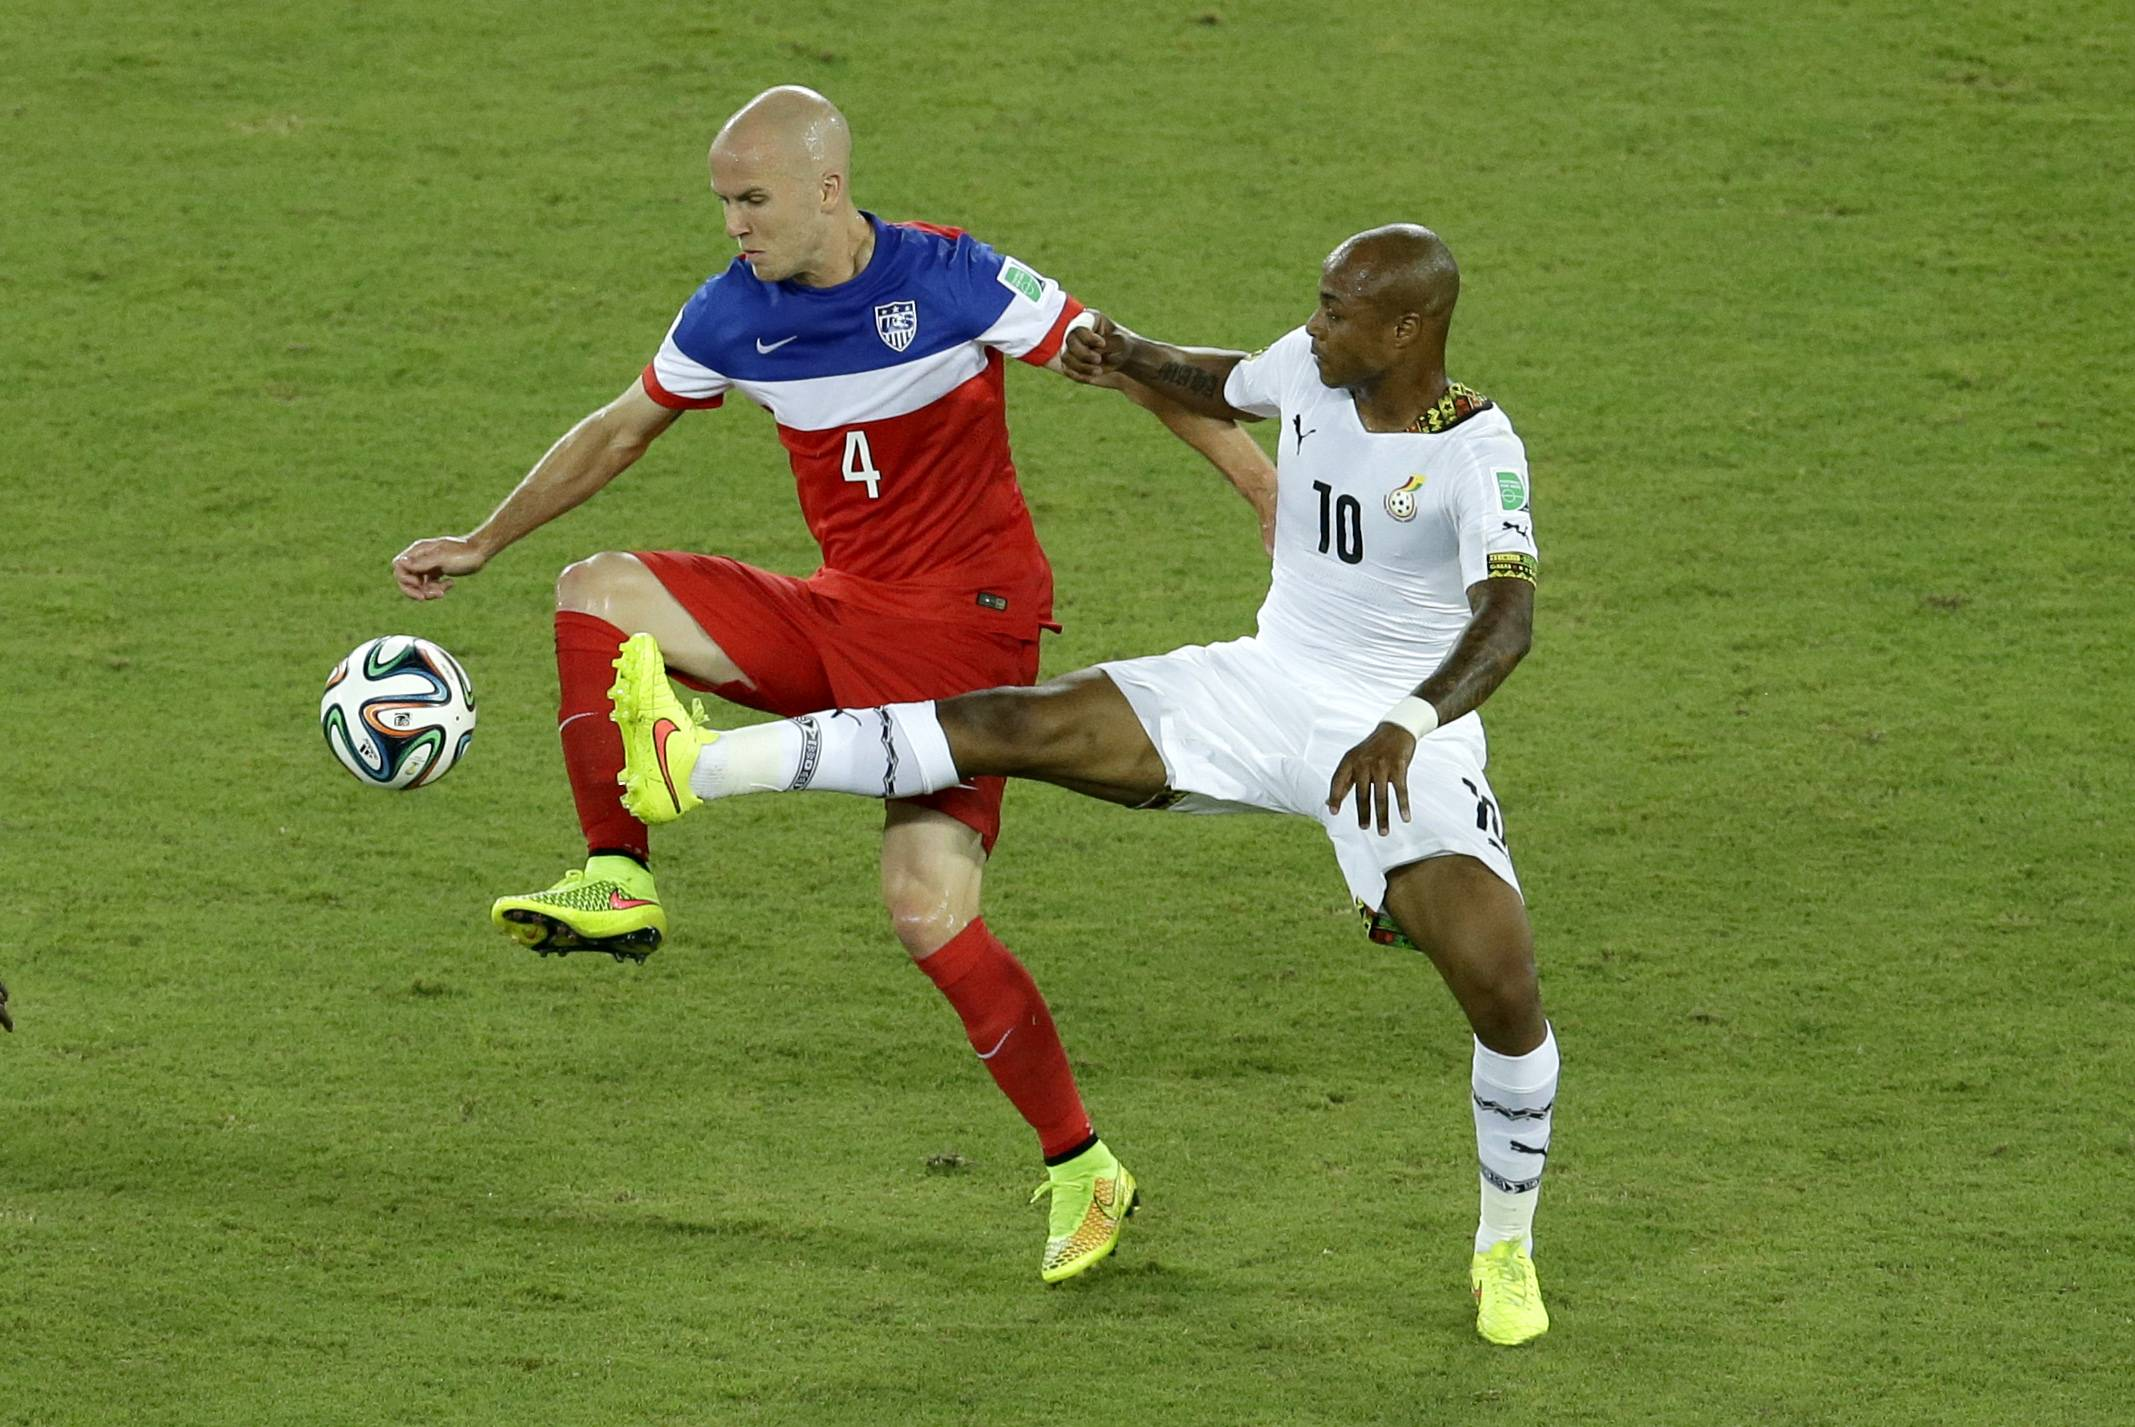 Michael Bradley and Ghana's Andre Ayew challenge for the ball during the U.S.'s big win June 16. Bradley called his play during the match not precise and not focused.